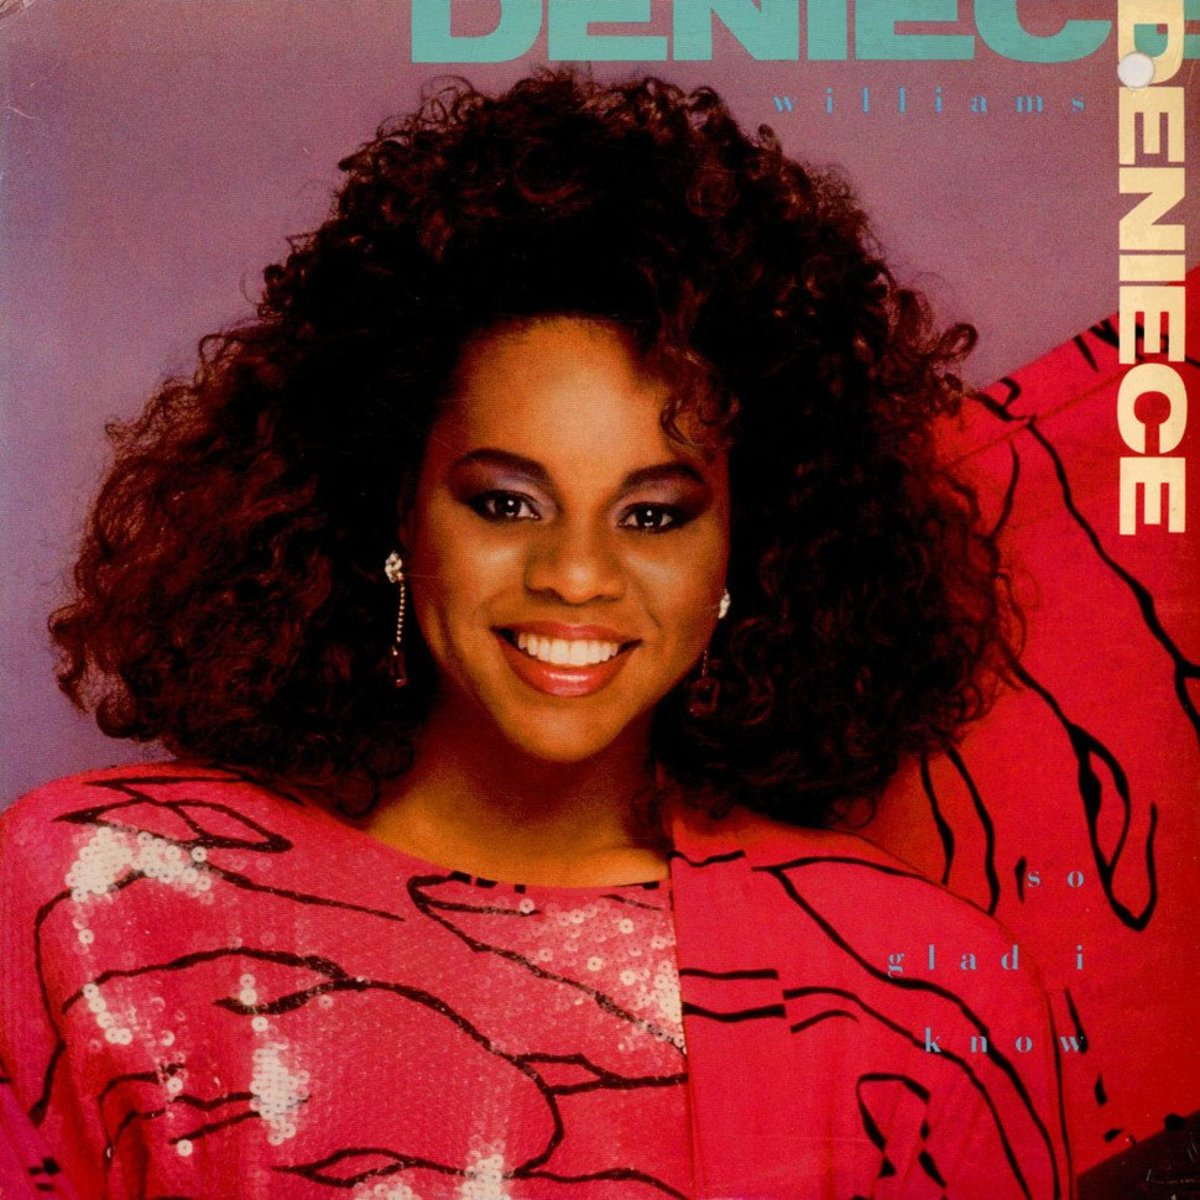 80s Soul and R&B Singer, DenIece Williams, Back in the Day